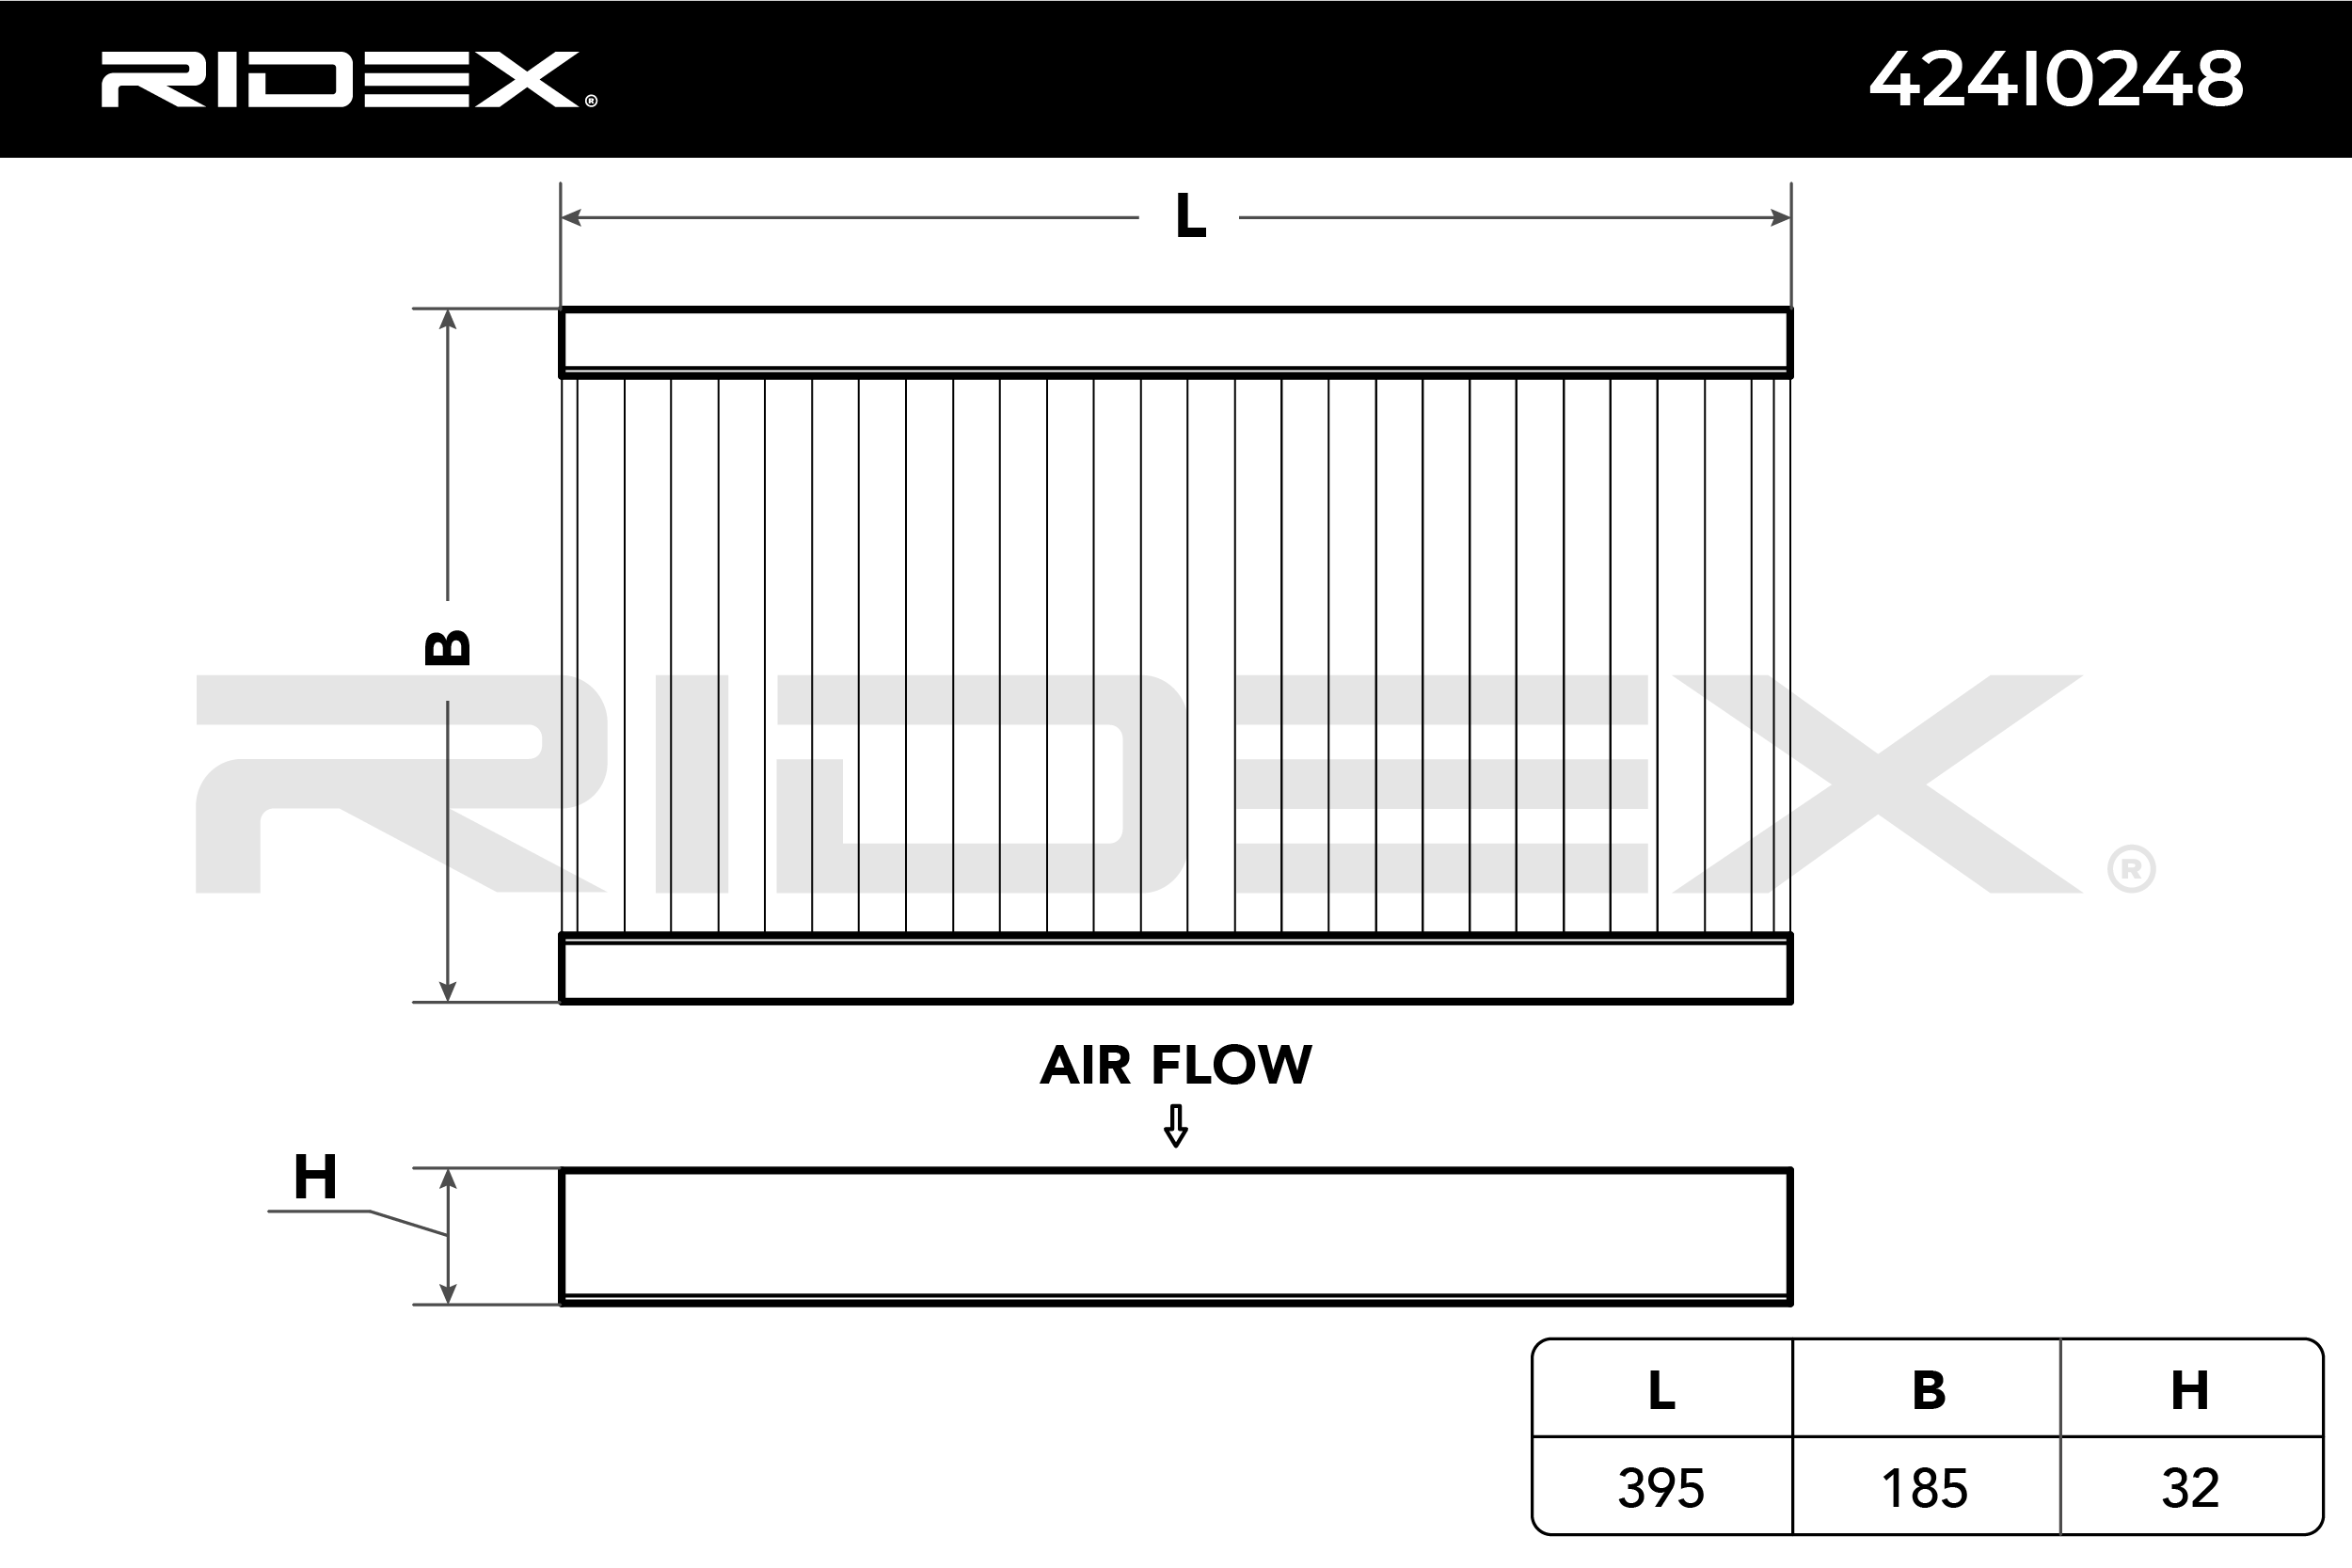 Cabin Air Filter RIDEX 424I0248 expert knowledge